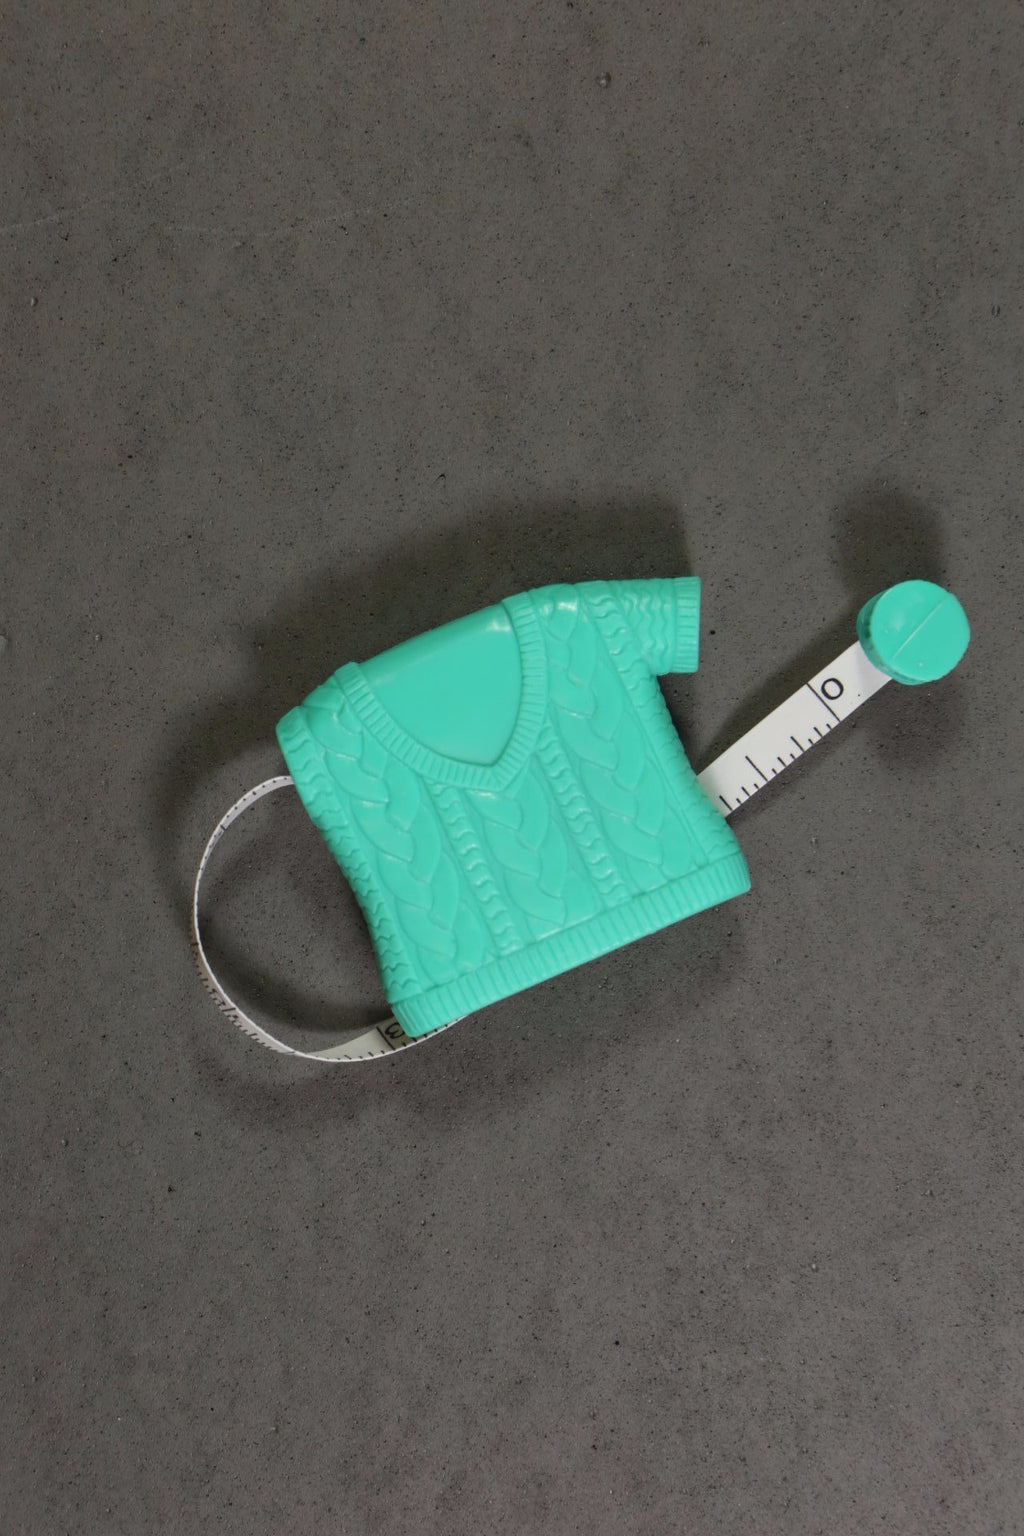 Sweater Tape Measure LT-N005